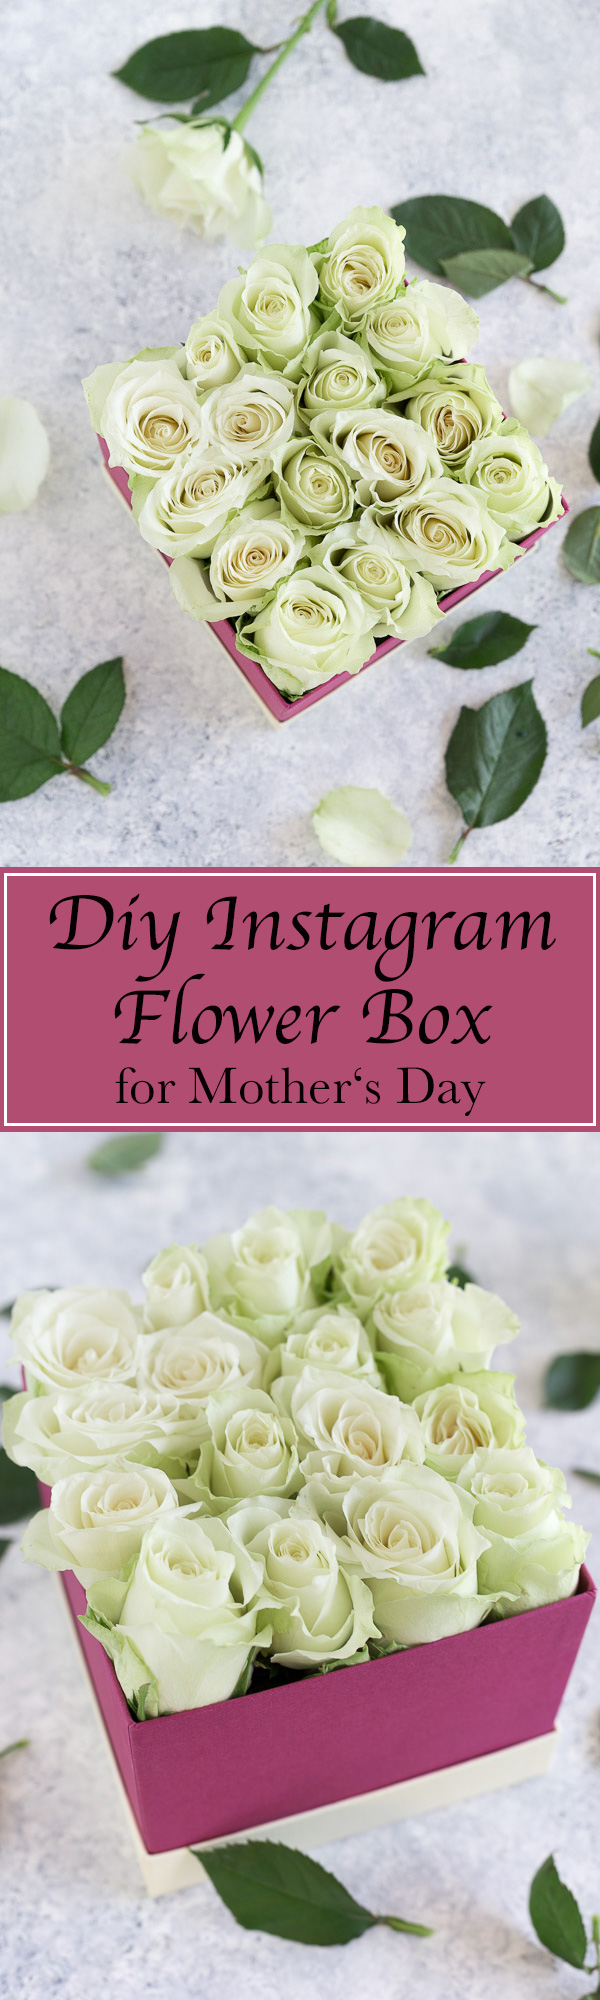 diy flower box, diy Instagram flower box, Instagram flower box, how to make a flower box, diy rose box, rose box, flower diy, flower craft